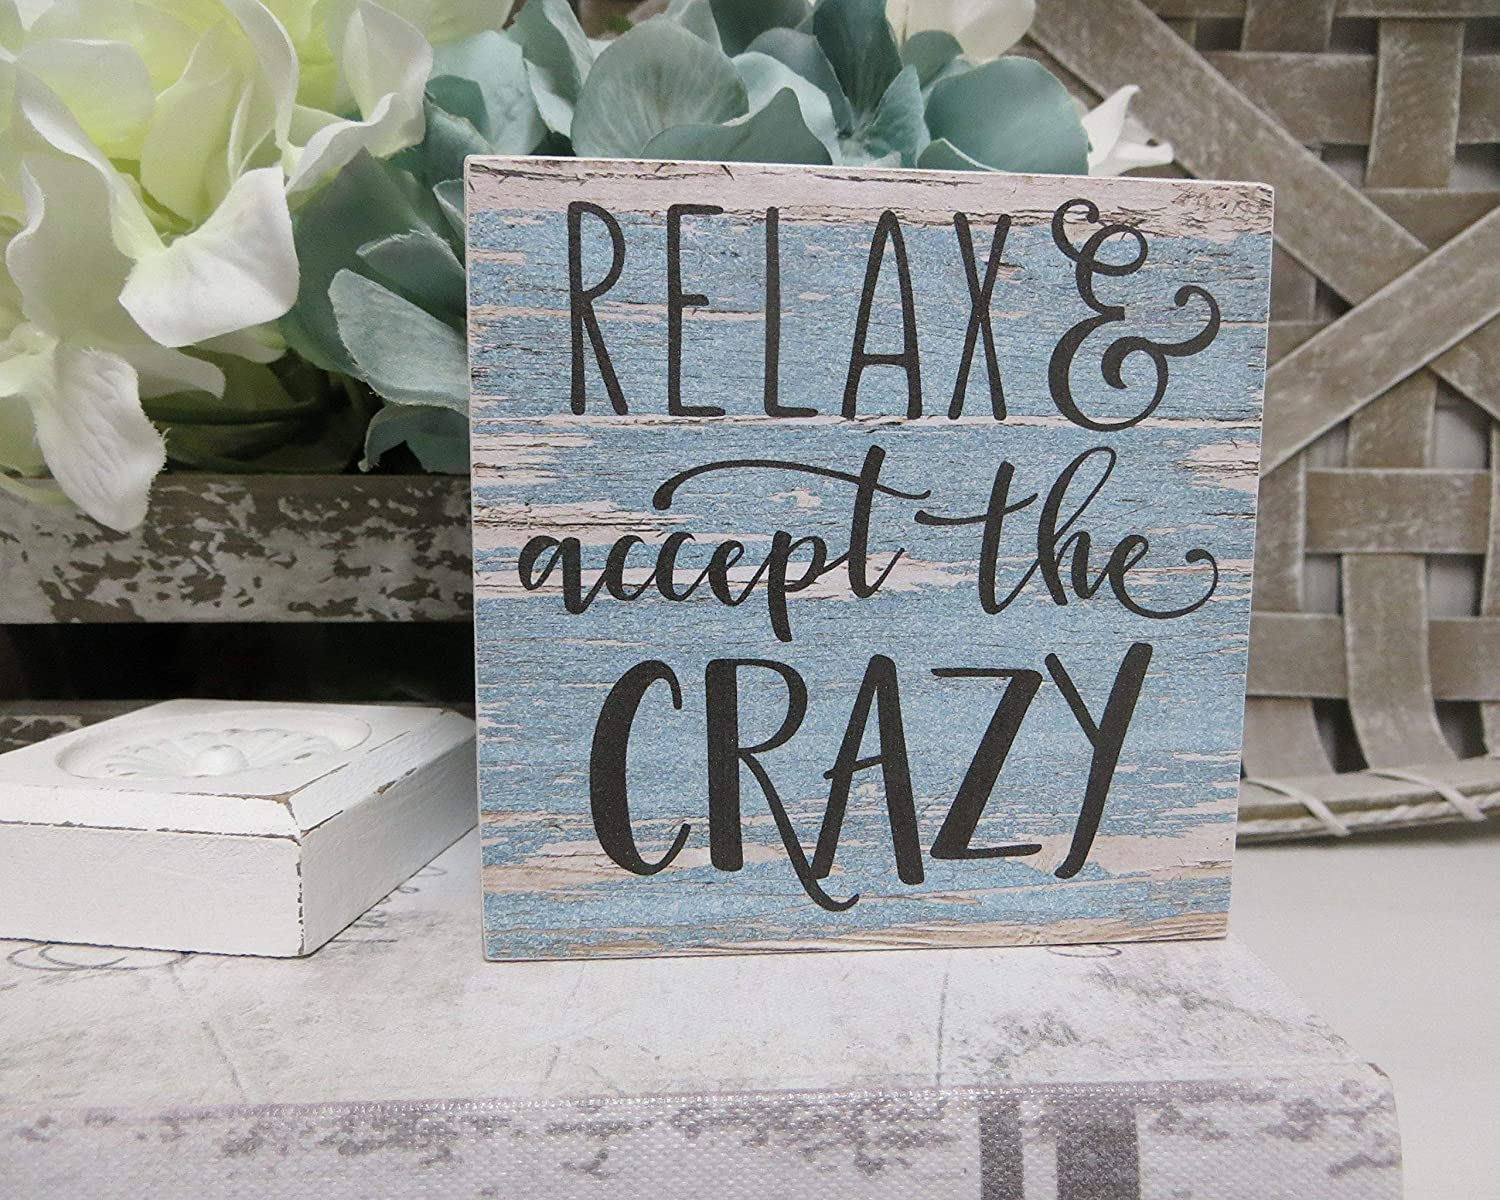 PotteLove Rustic Wooden Plaque Wall Art Hanging Sign Wood Sign, Relax and Accept The Crazy, Office Decor, Humorous Crazy Quote, Funny Office Wood Sign 12